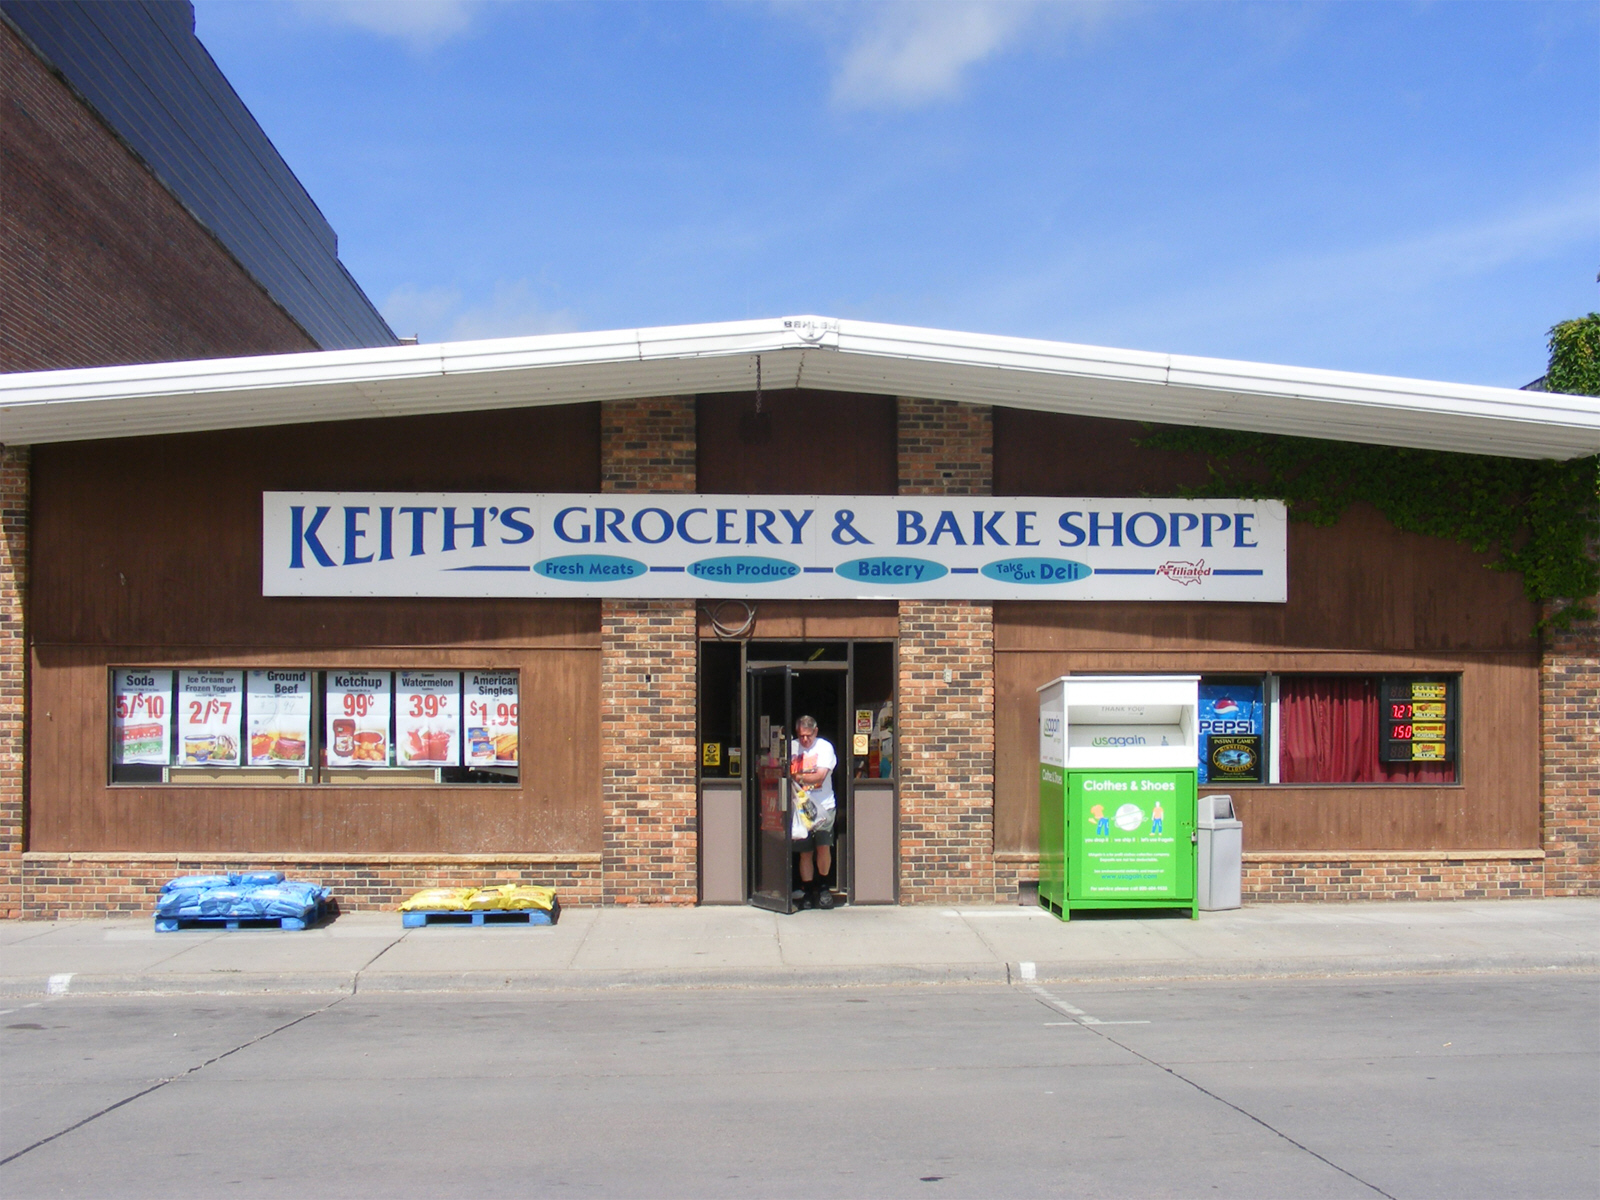 Keith's Grocery and Bake Shoppe